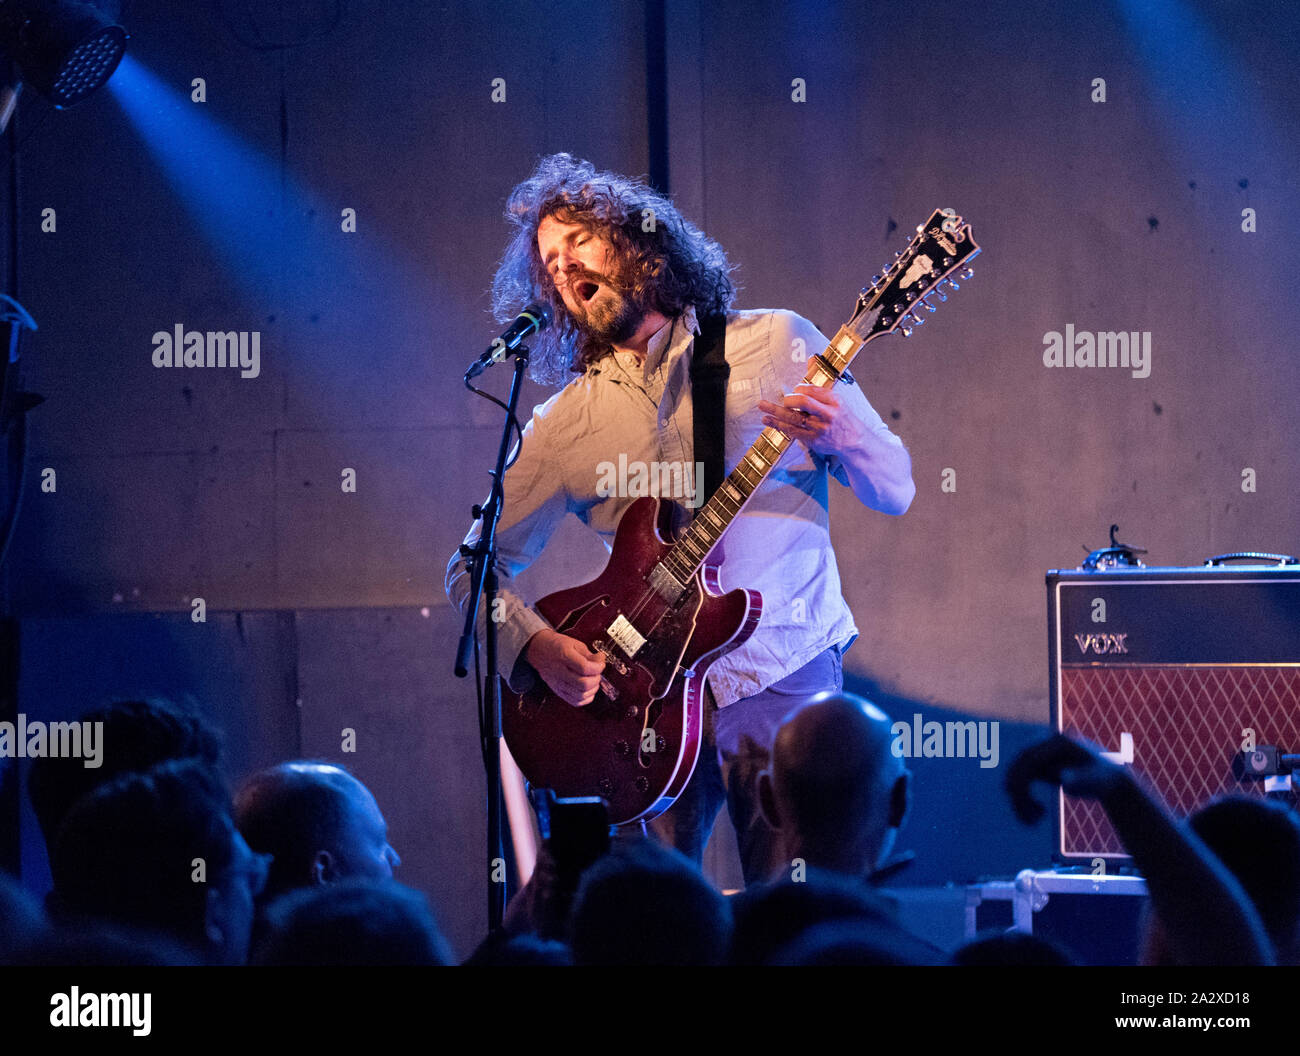 Brudenell Social Club, Leeds, UK. 3rd October 2019. US indie band Sebadoh in concert. Lou Barlow singer and guitarist. Credit John Bentley/Alamy Live News. Stock Photo